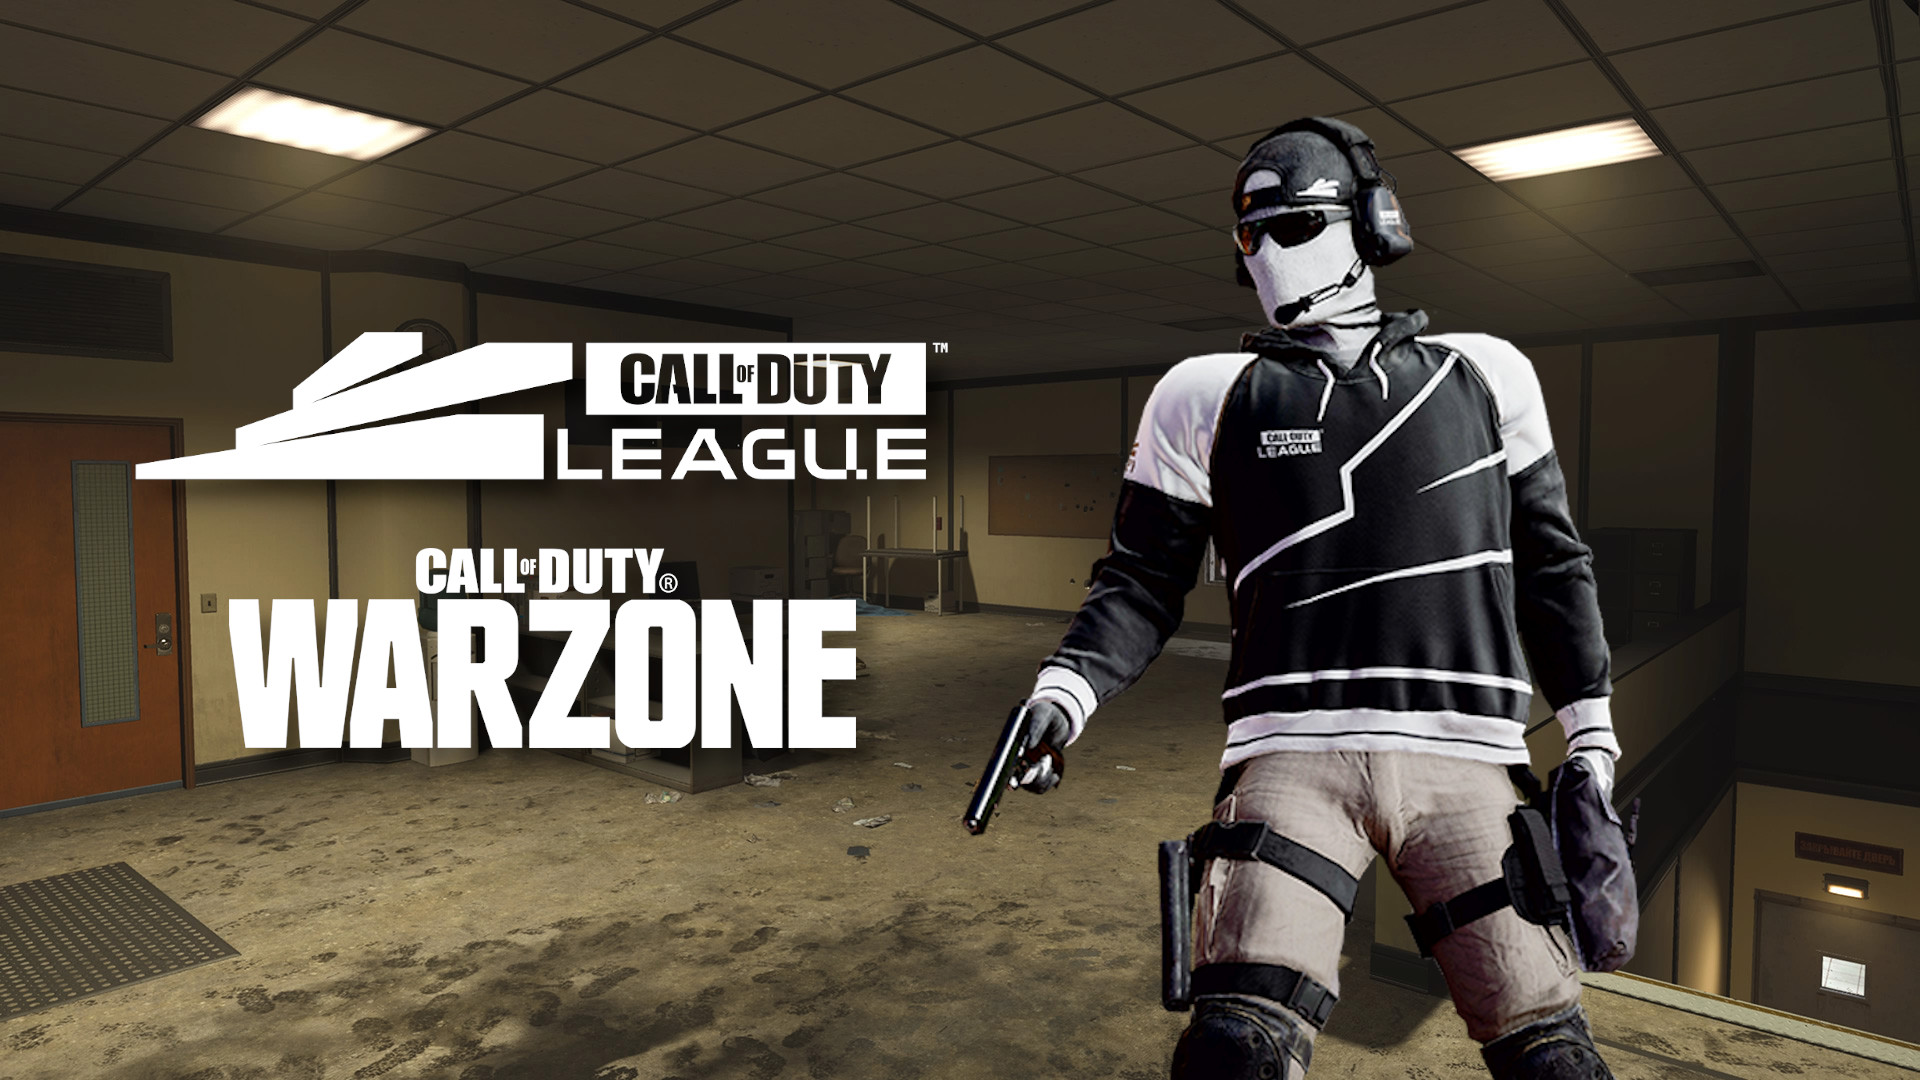 warzone call of duty league